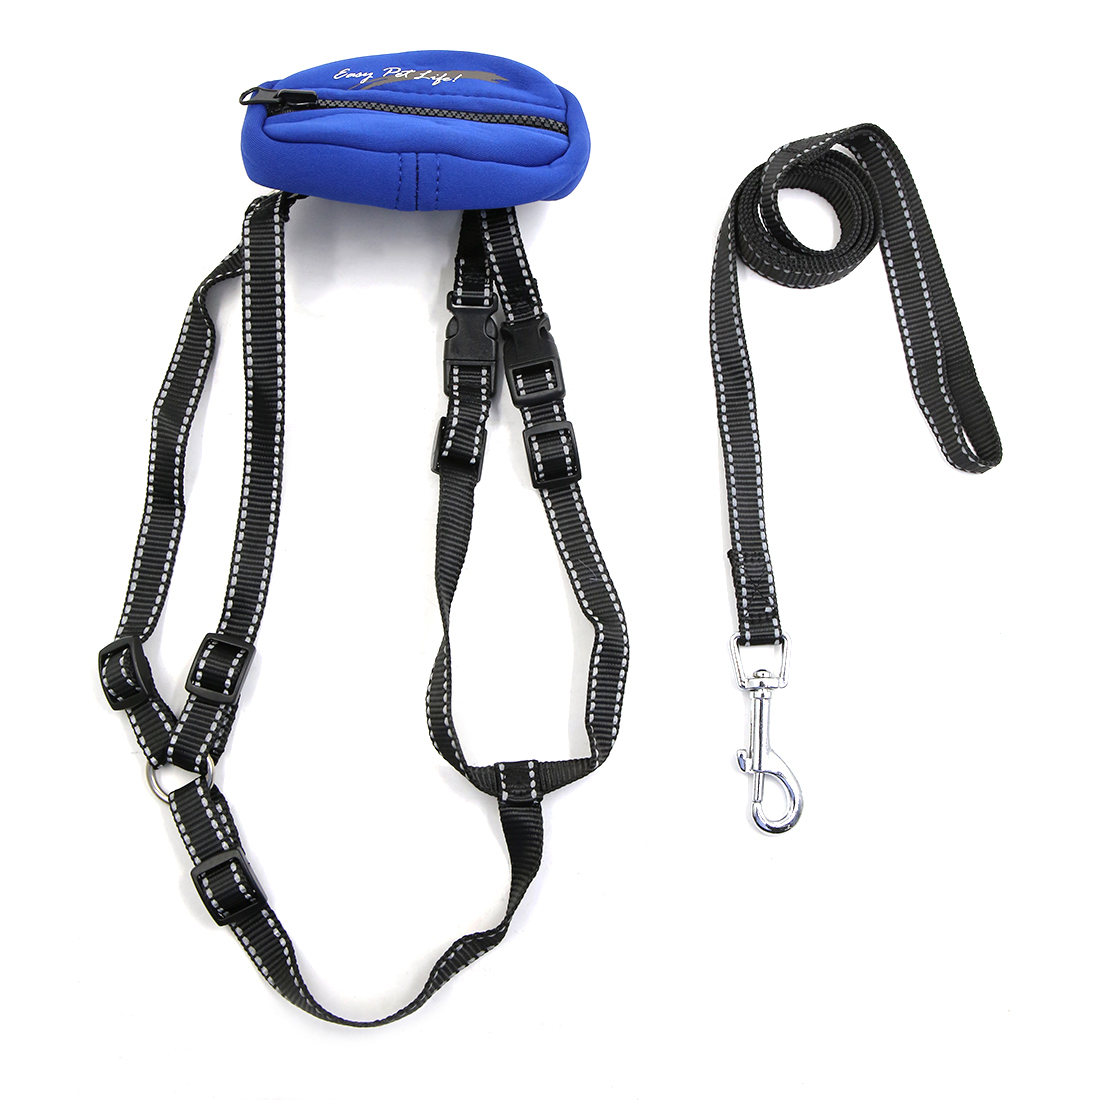 Safe Reflective Dog Harness Leash Adjustable Nylon Collar For Walking with Storage Bag Blue XL